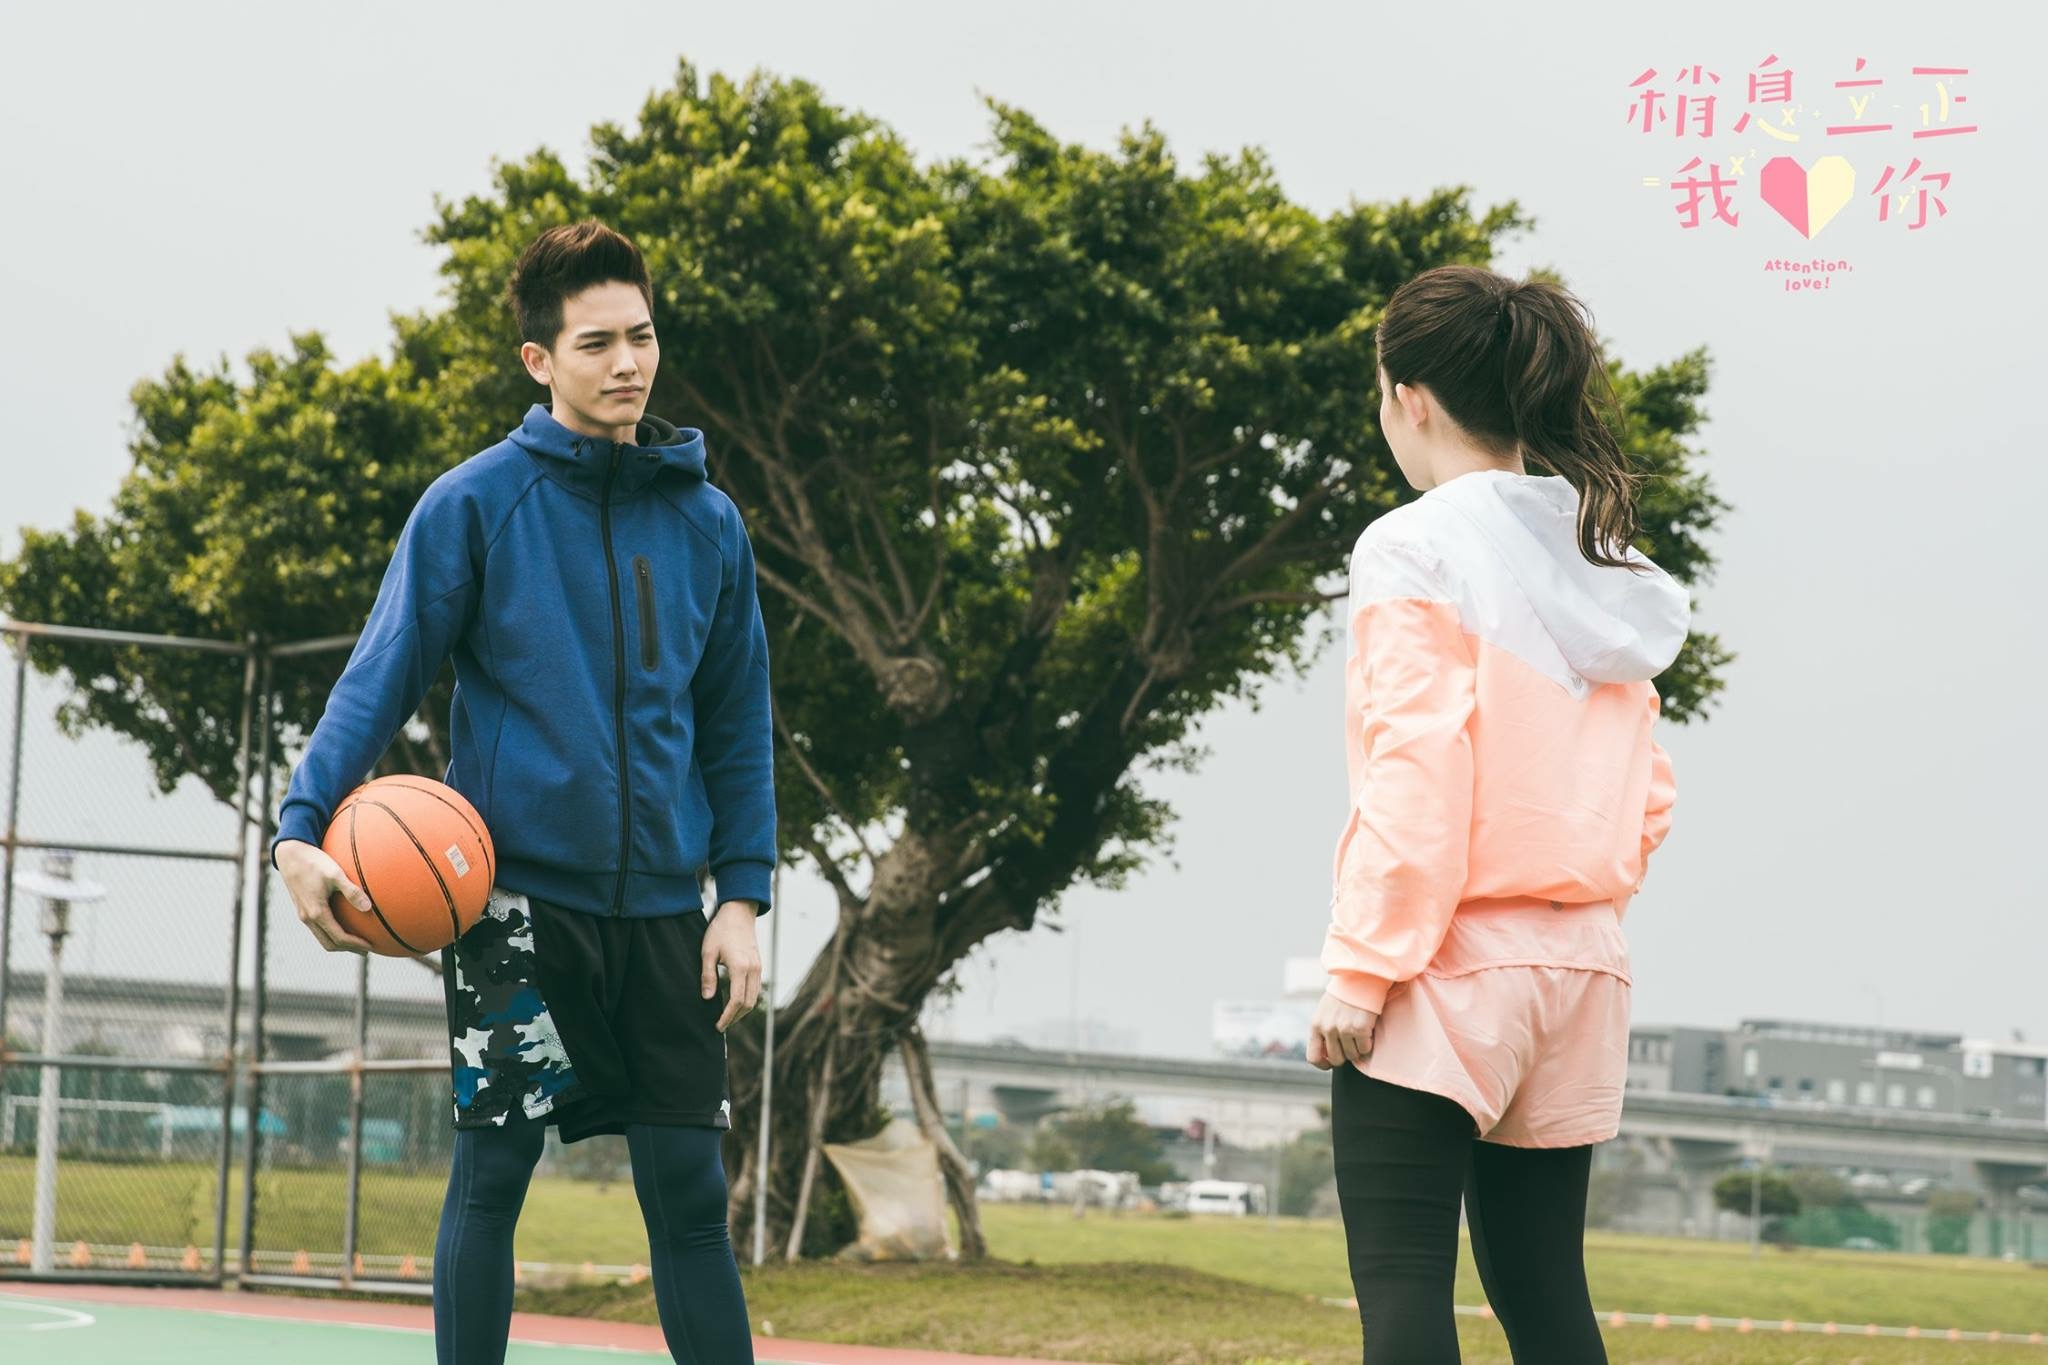 Shu-yao Kuo and Riley Wang in Attention, Love! (2017)